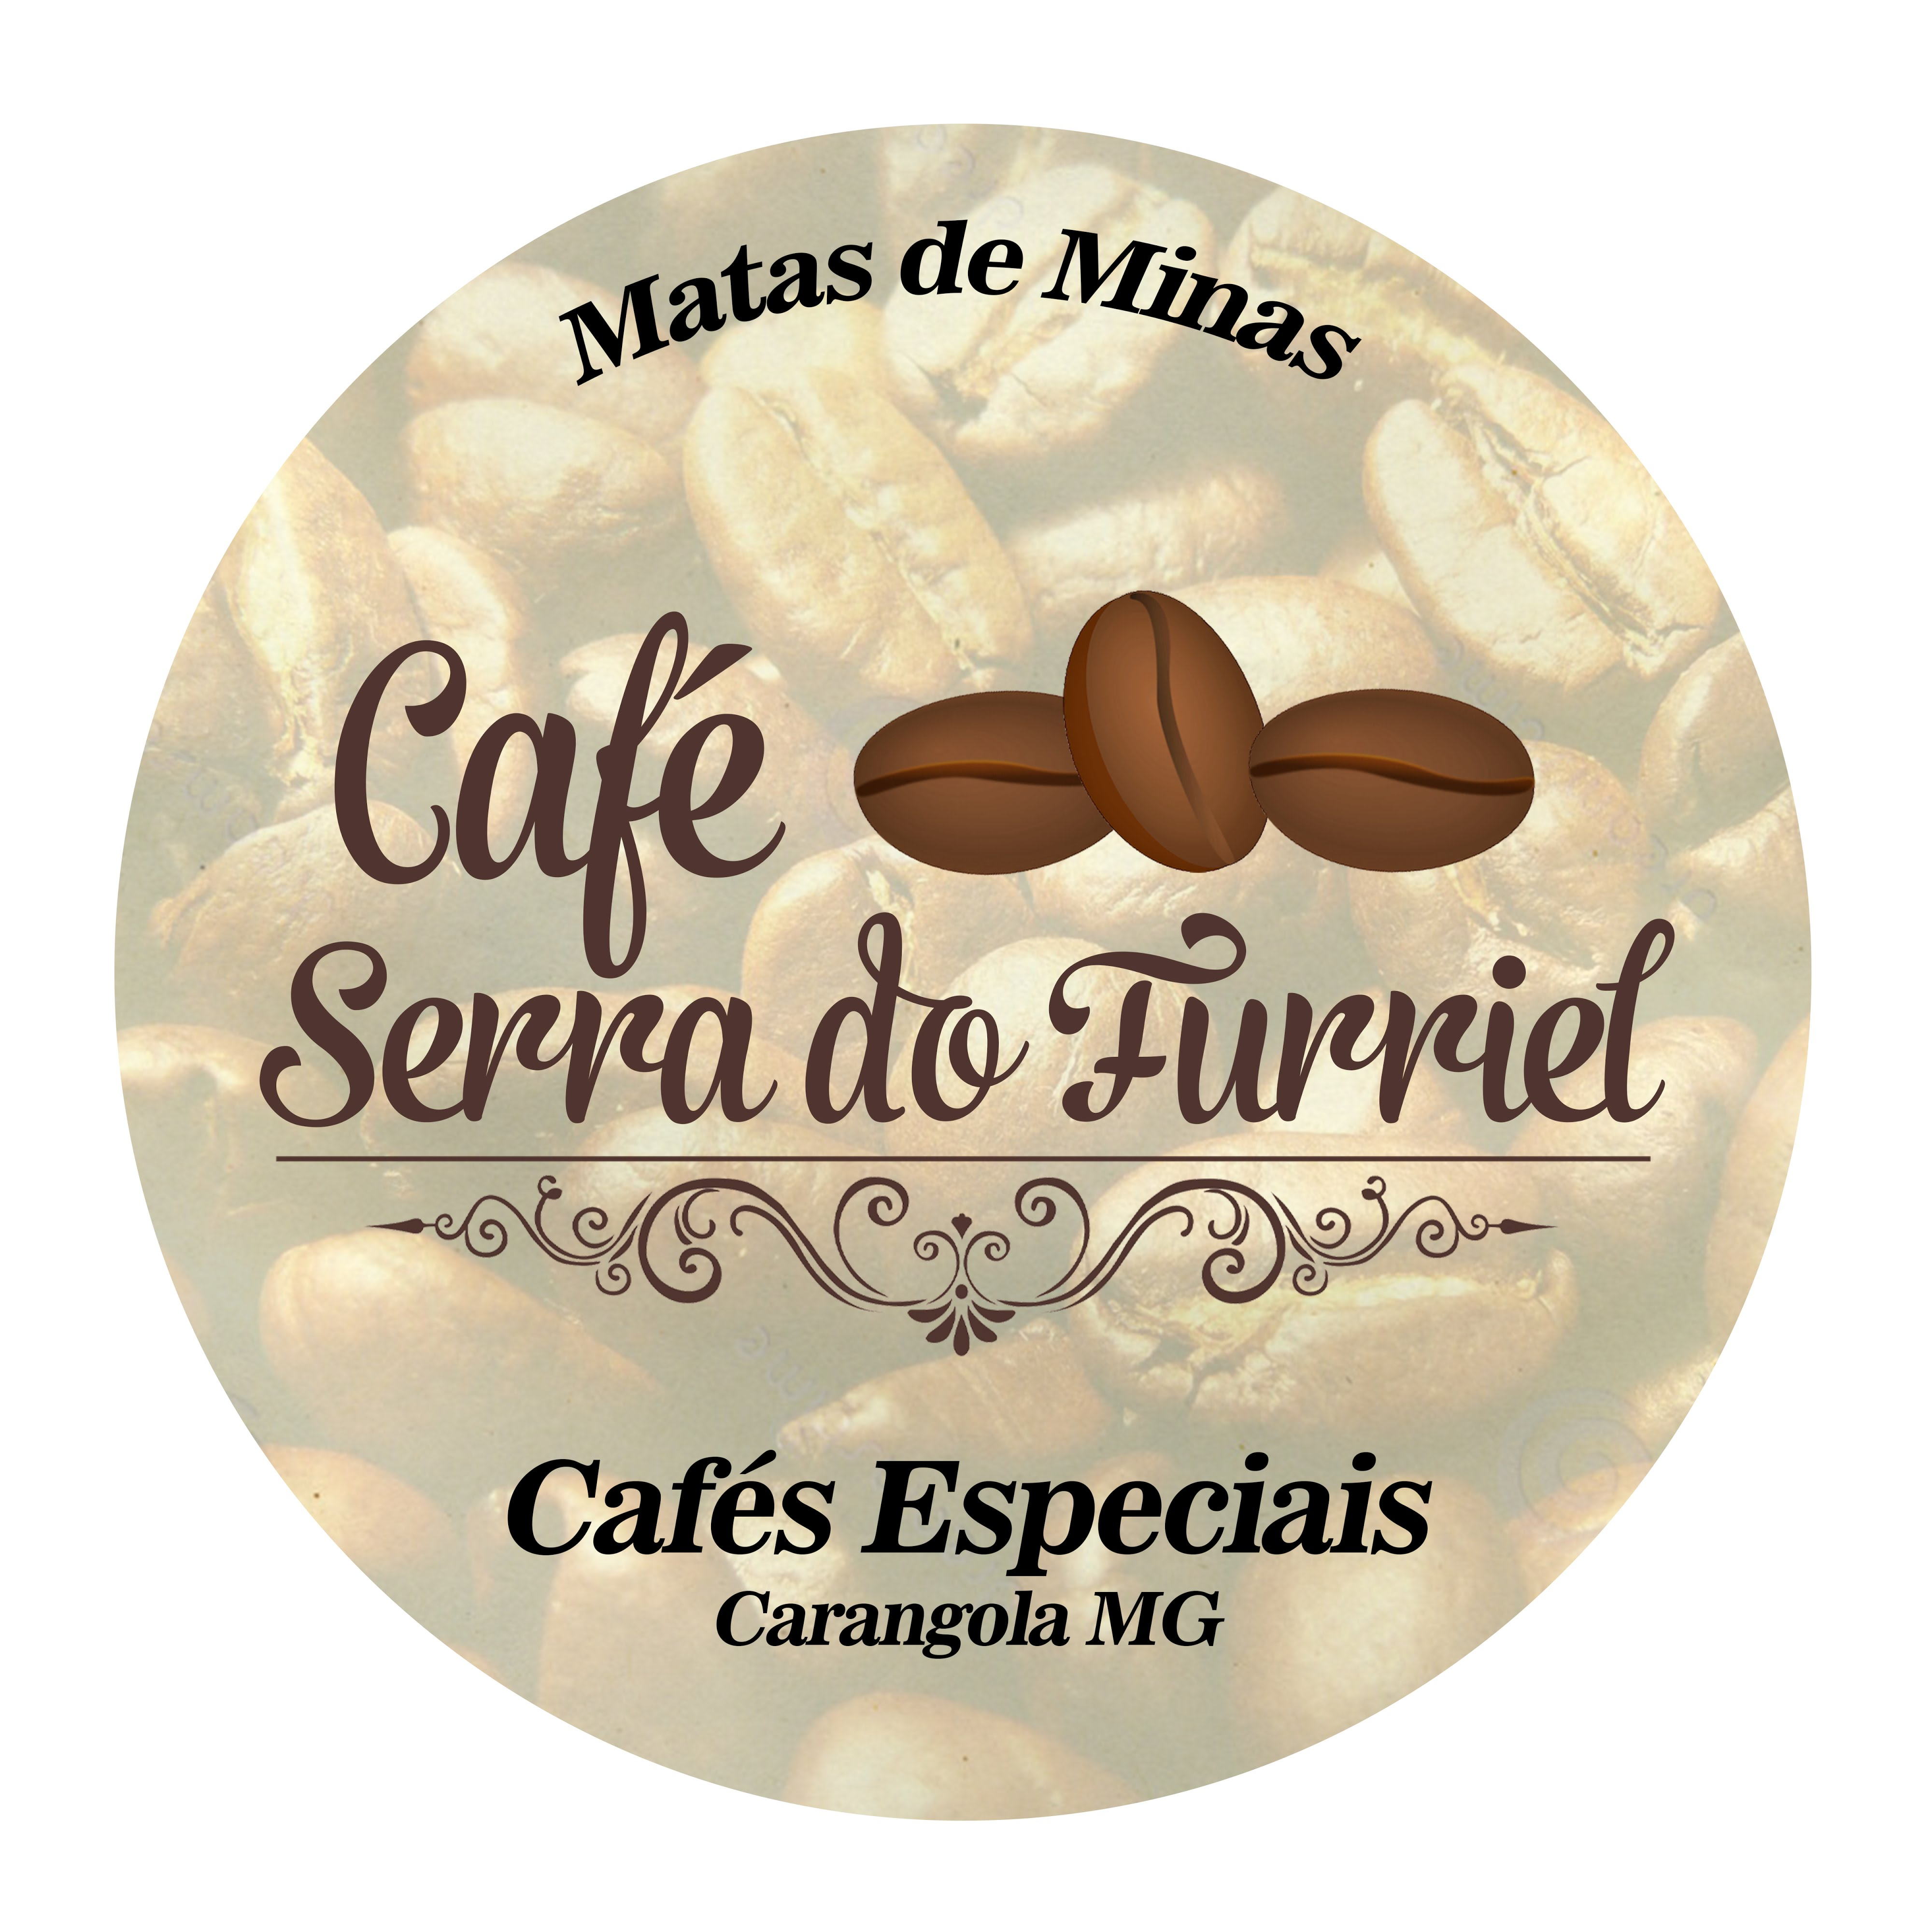 Café Serra do Furriel